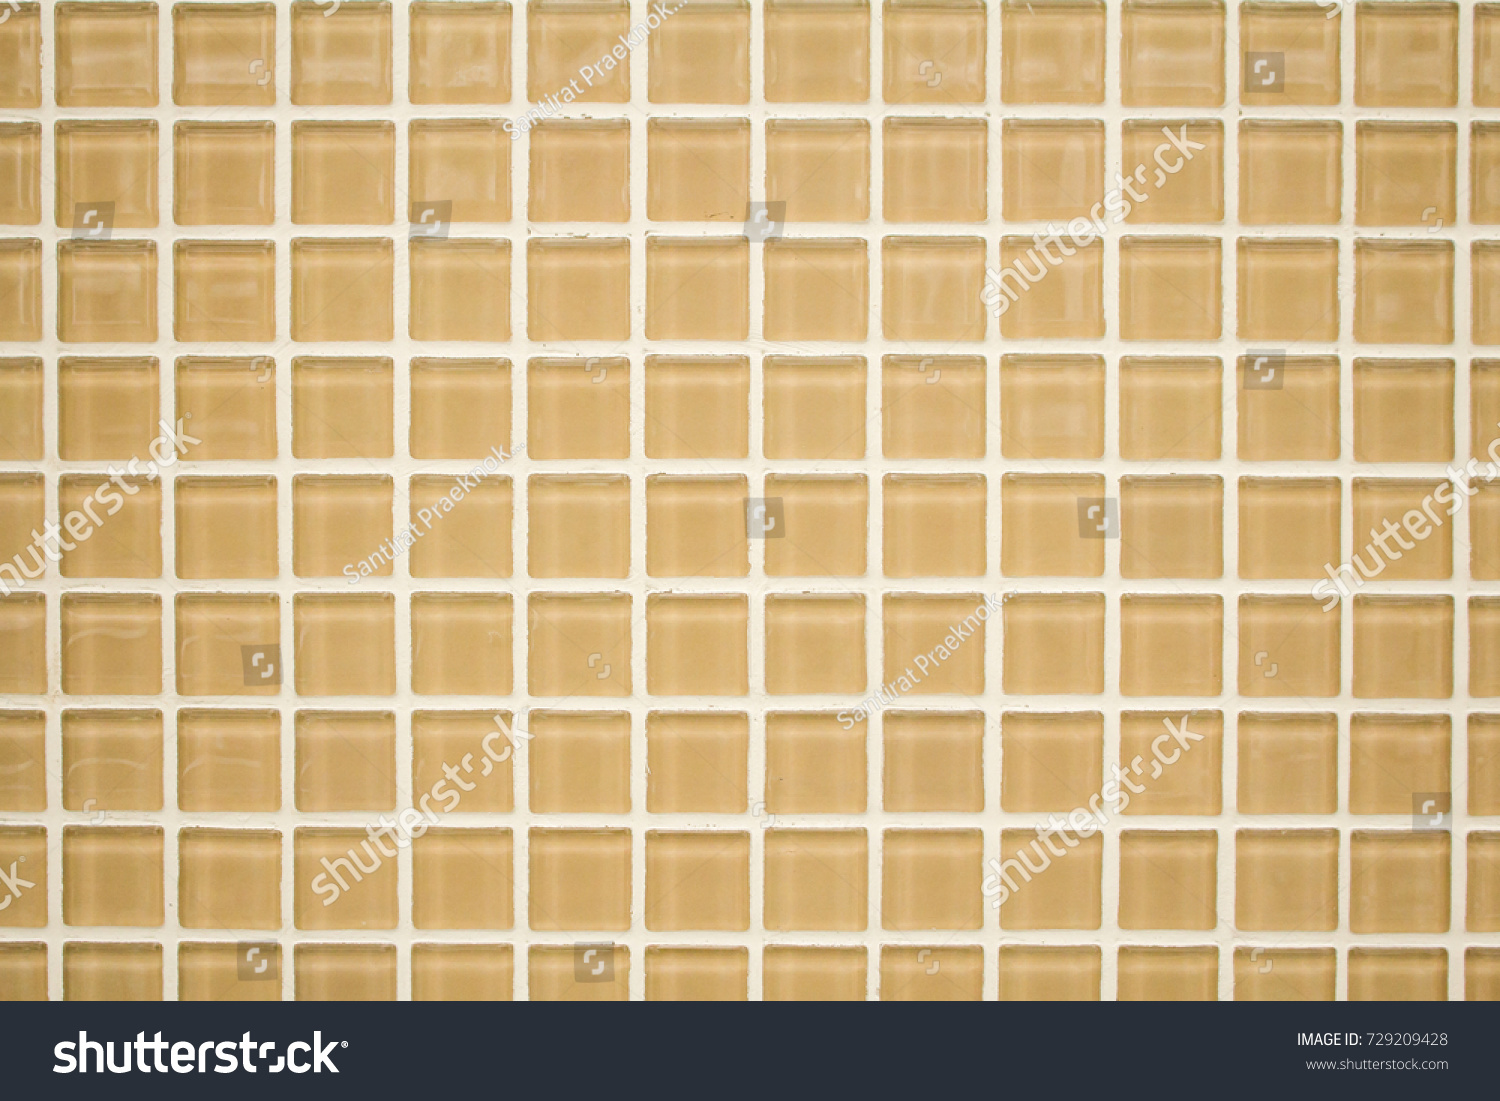 Yellow Cream Color Small Tiles Texture Stock Photo (Royalty Free ...